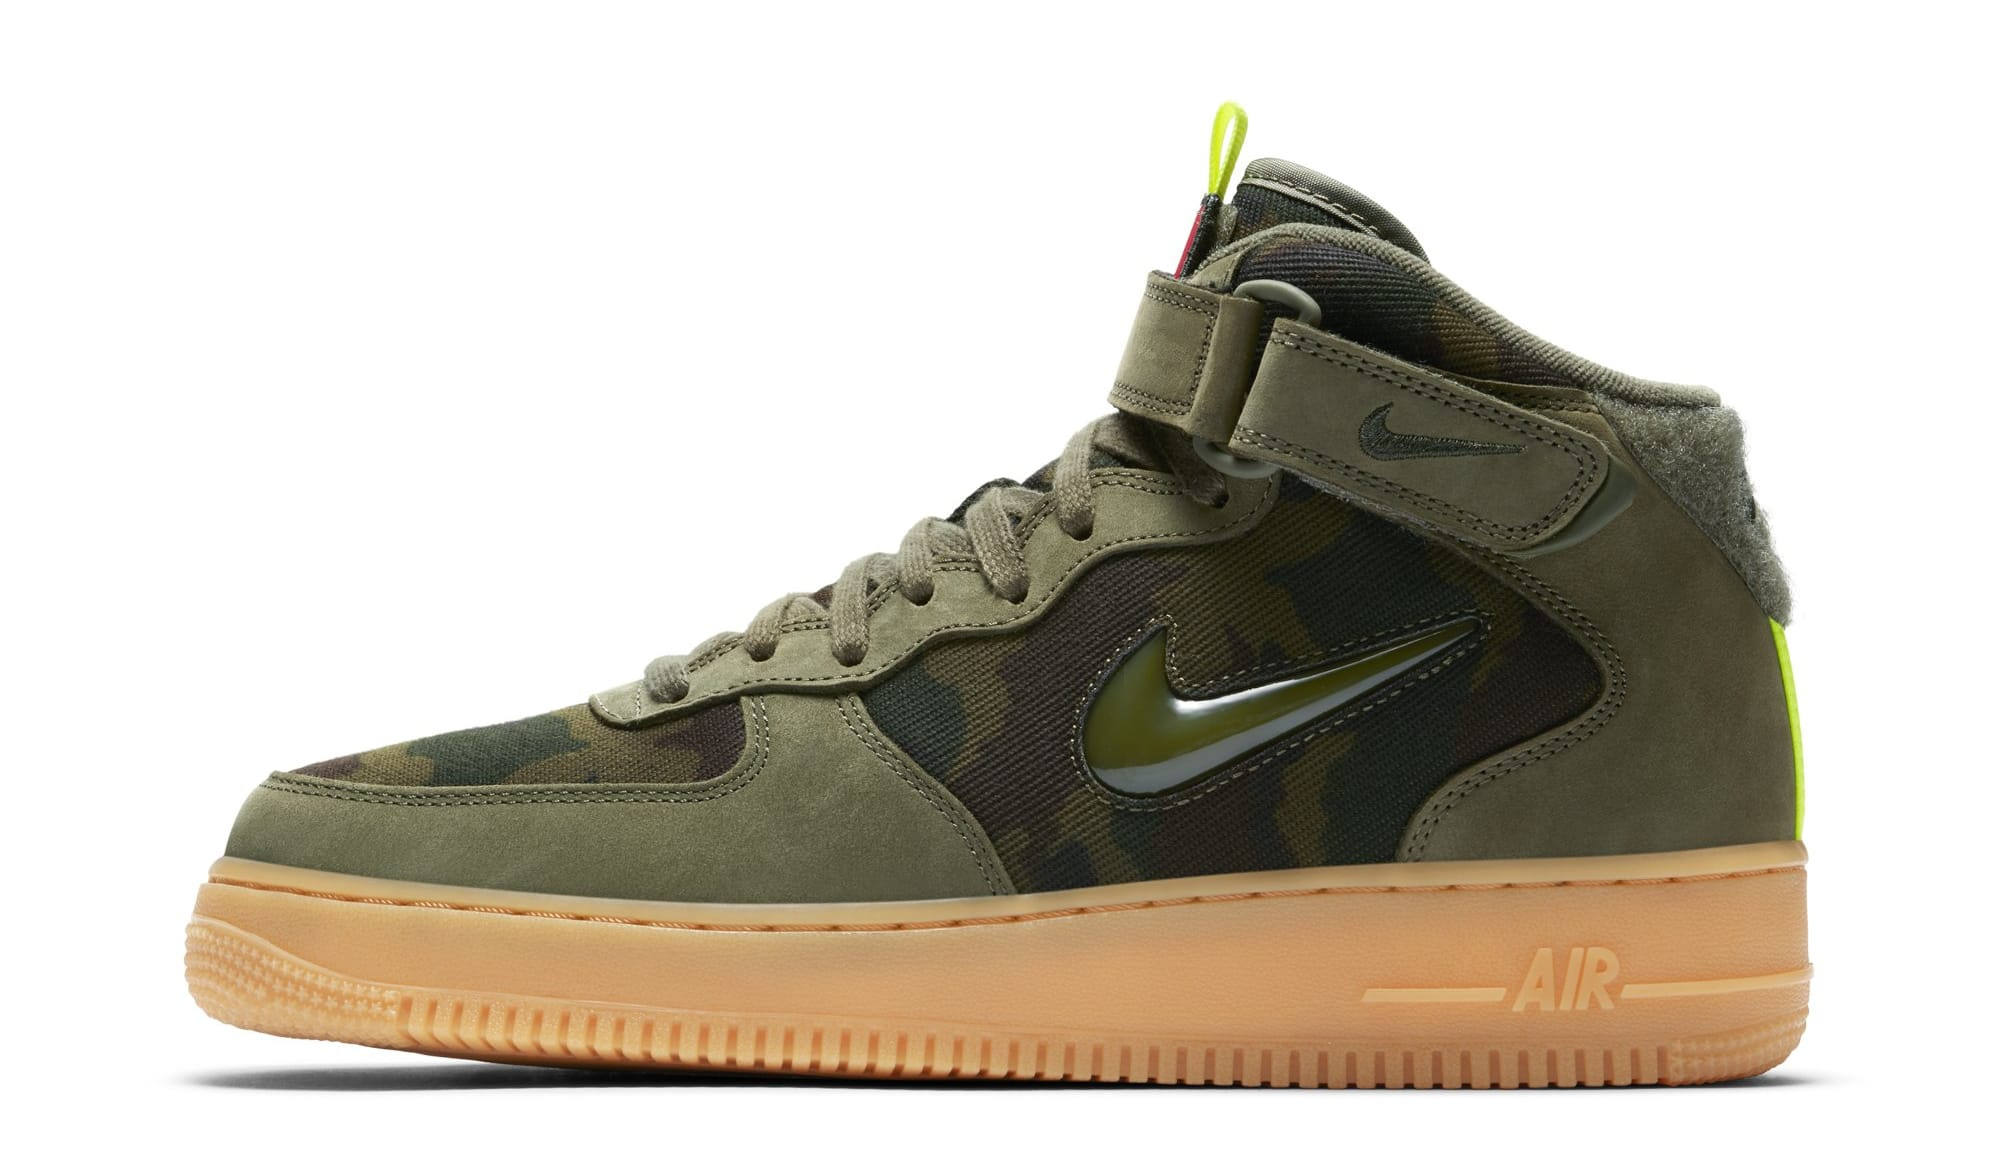 5f39d6f4f3 ... germany nike air force 1 mid france camo av2586 200 lateral 155f4 77436